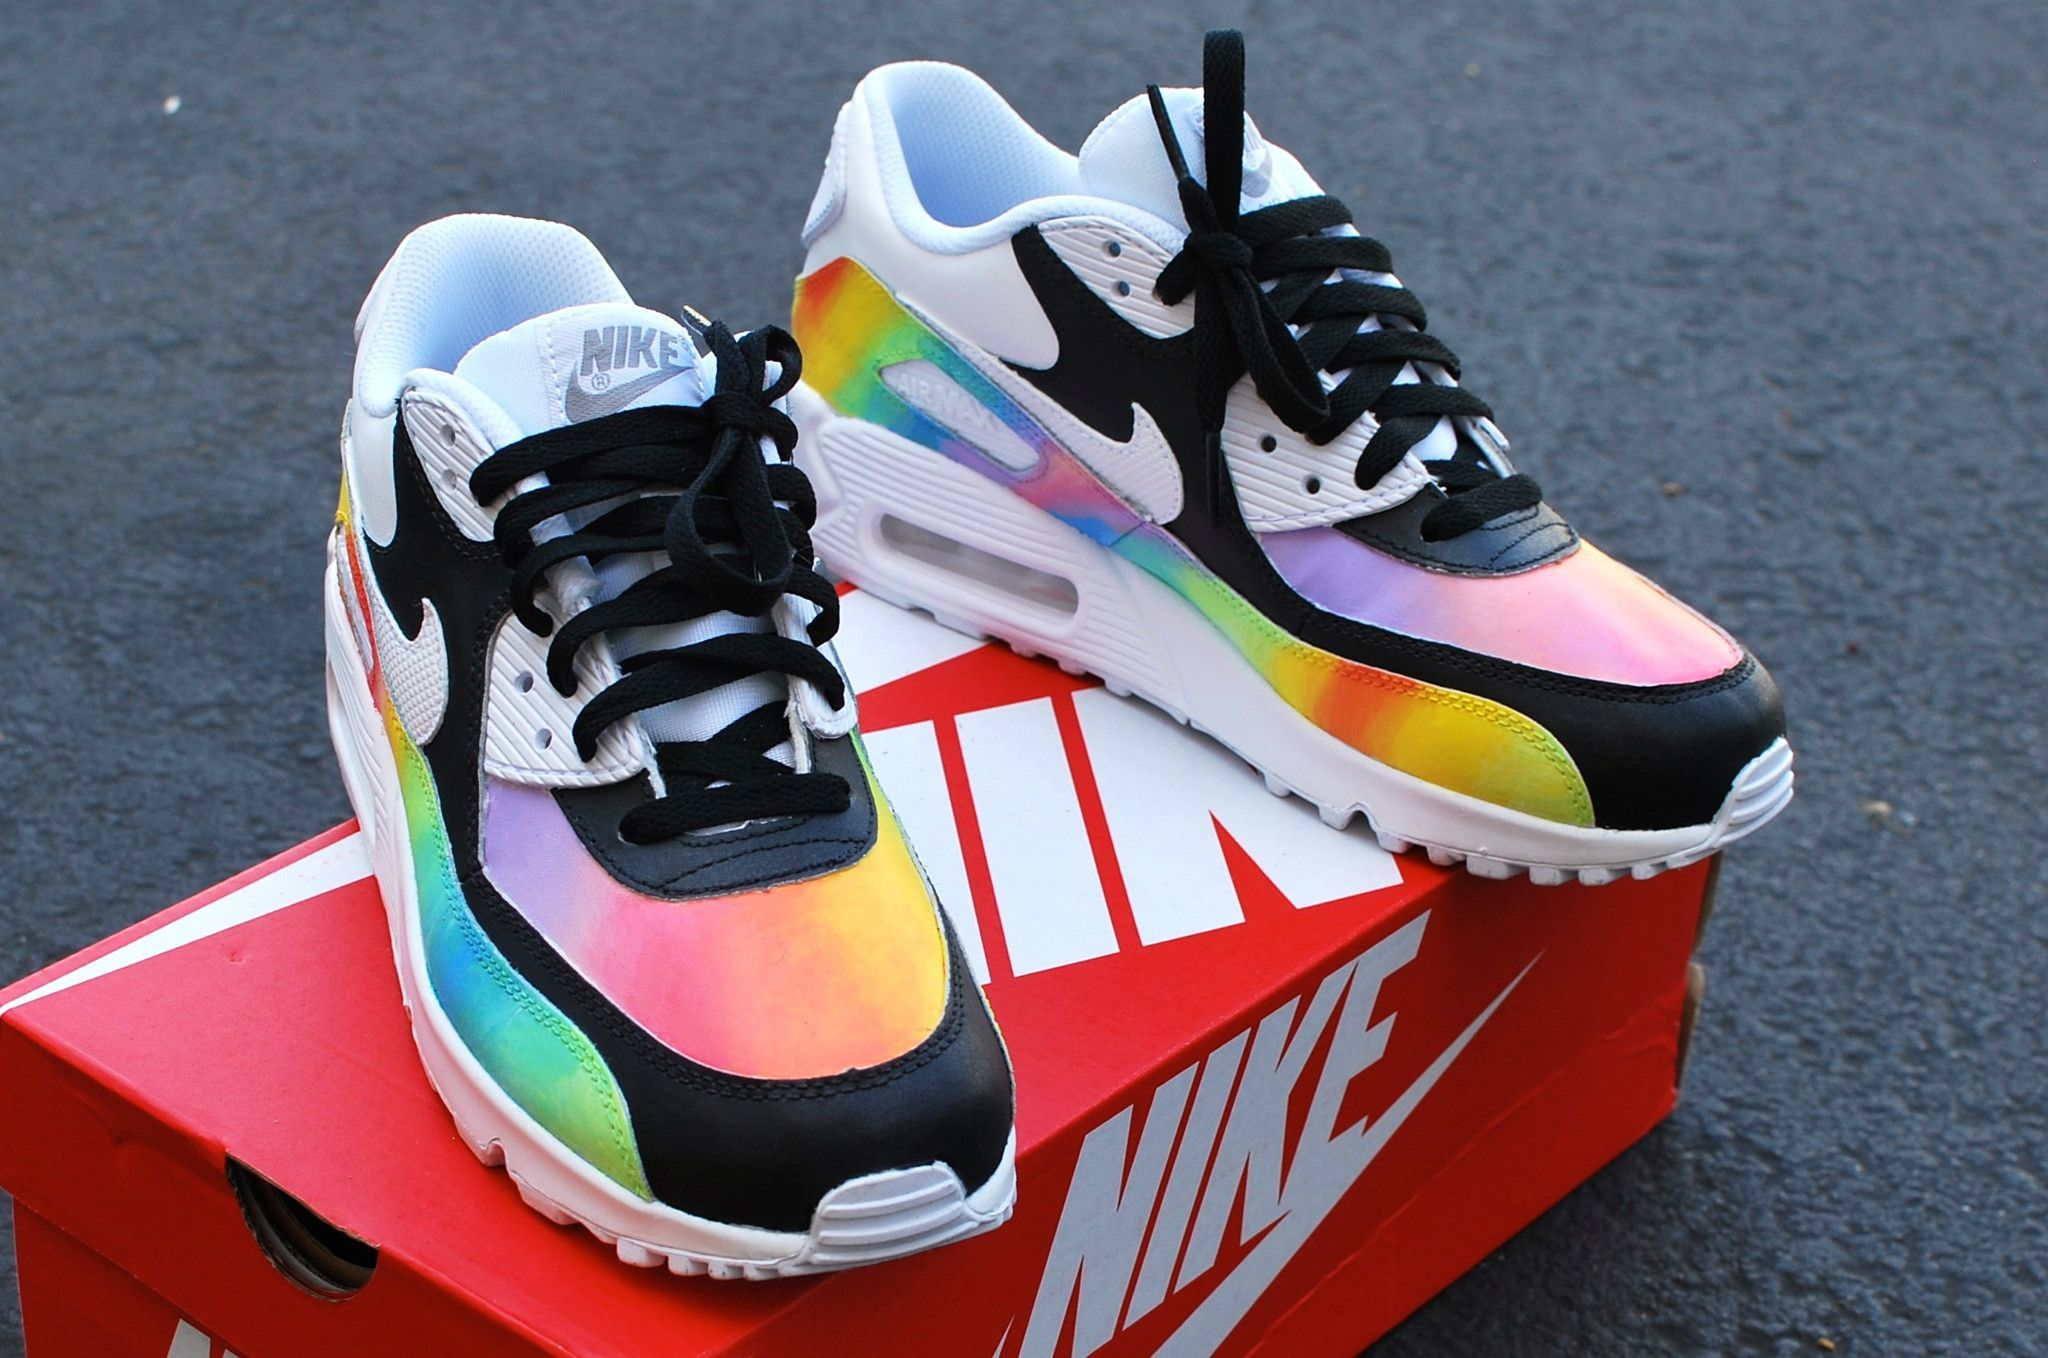 76ae5fdc30 Custom Hand-Painted Color Blast Nike Air Max 90 Running Shoe | Nike ...